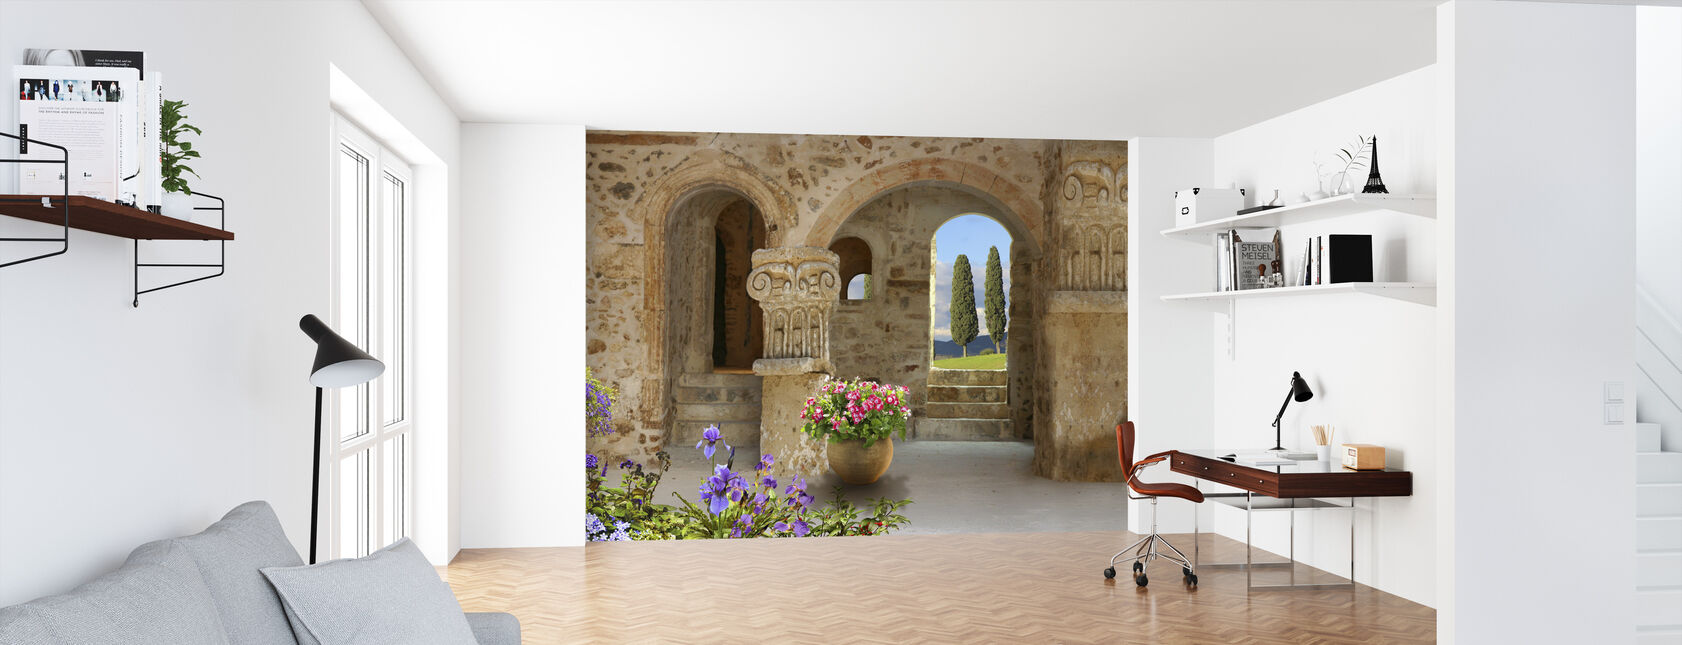 Old Stone Port - Wallpaper - Office